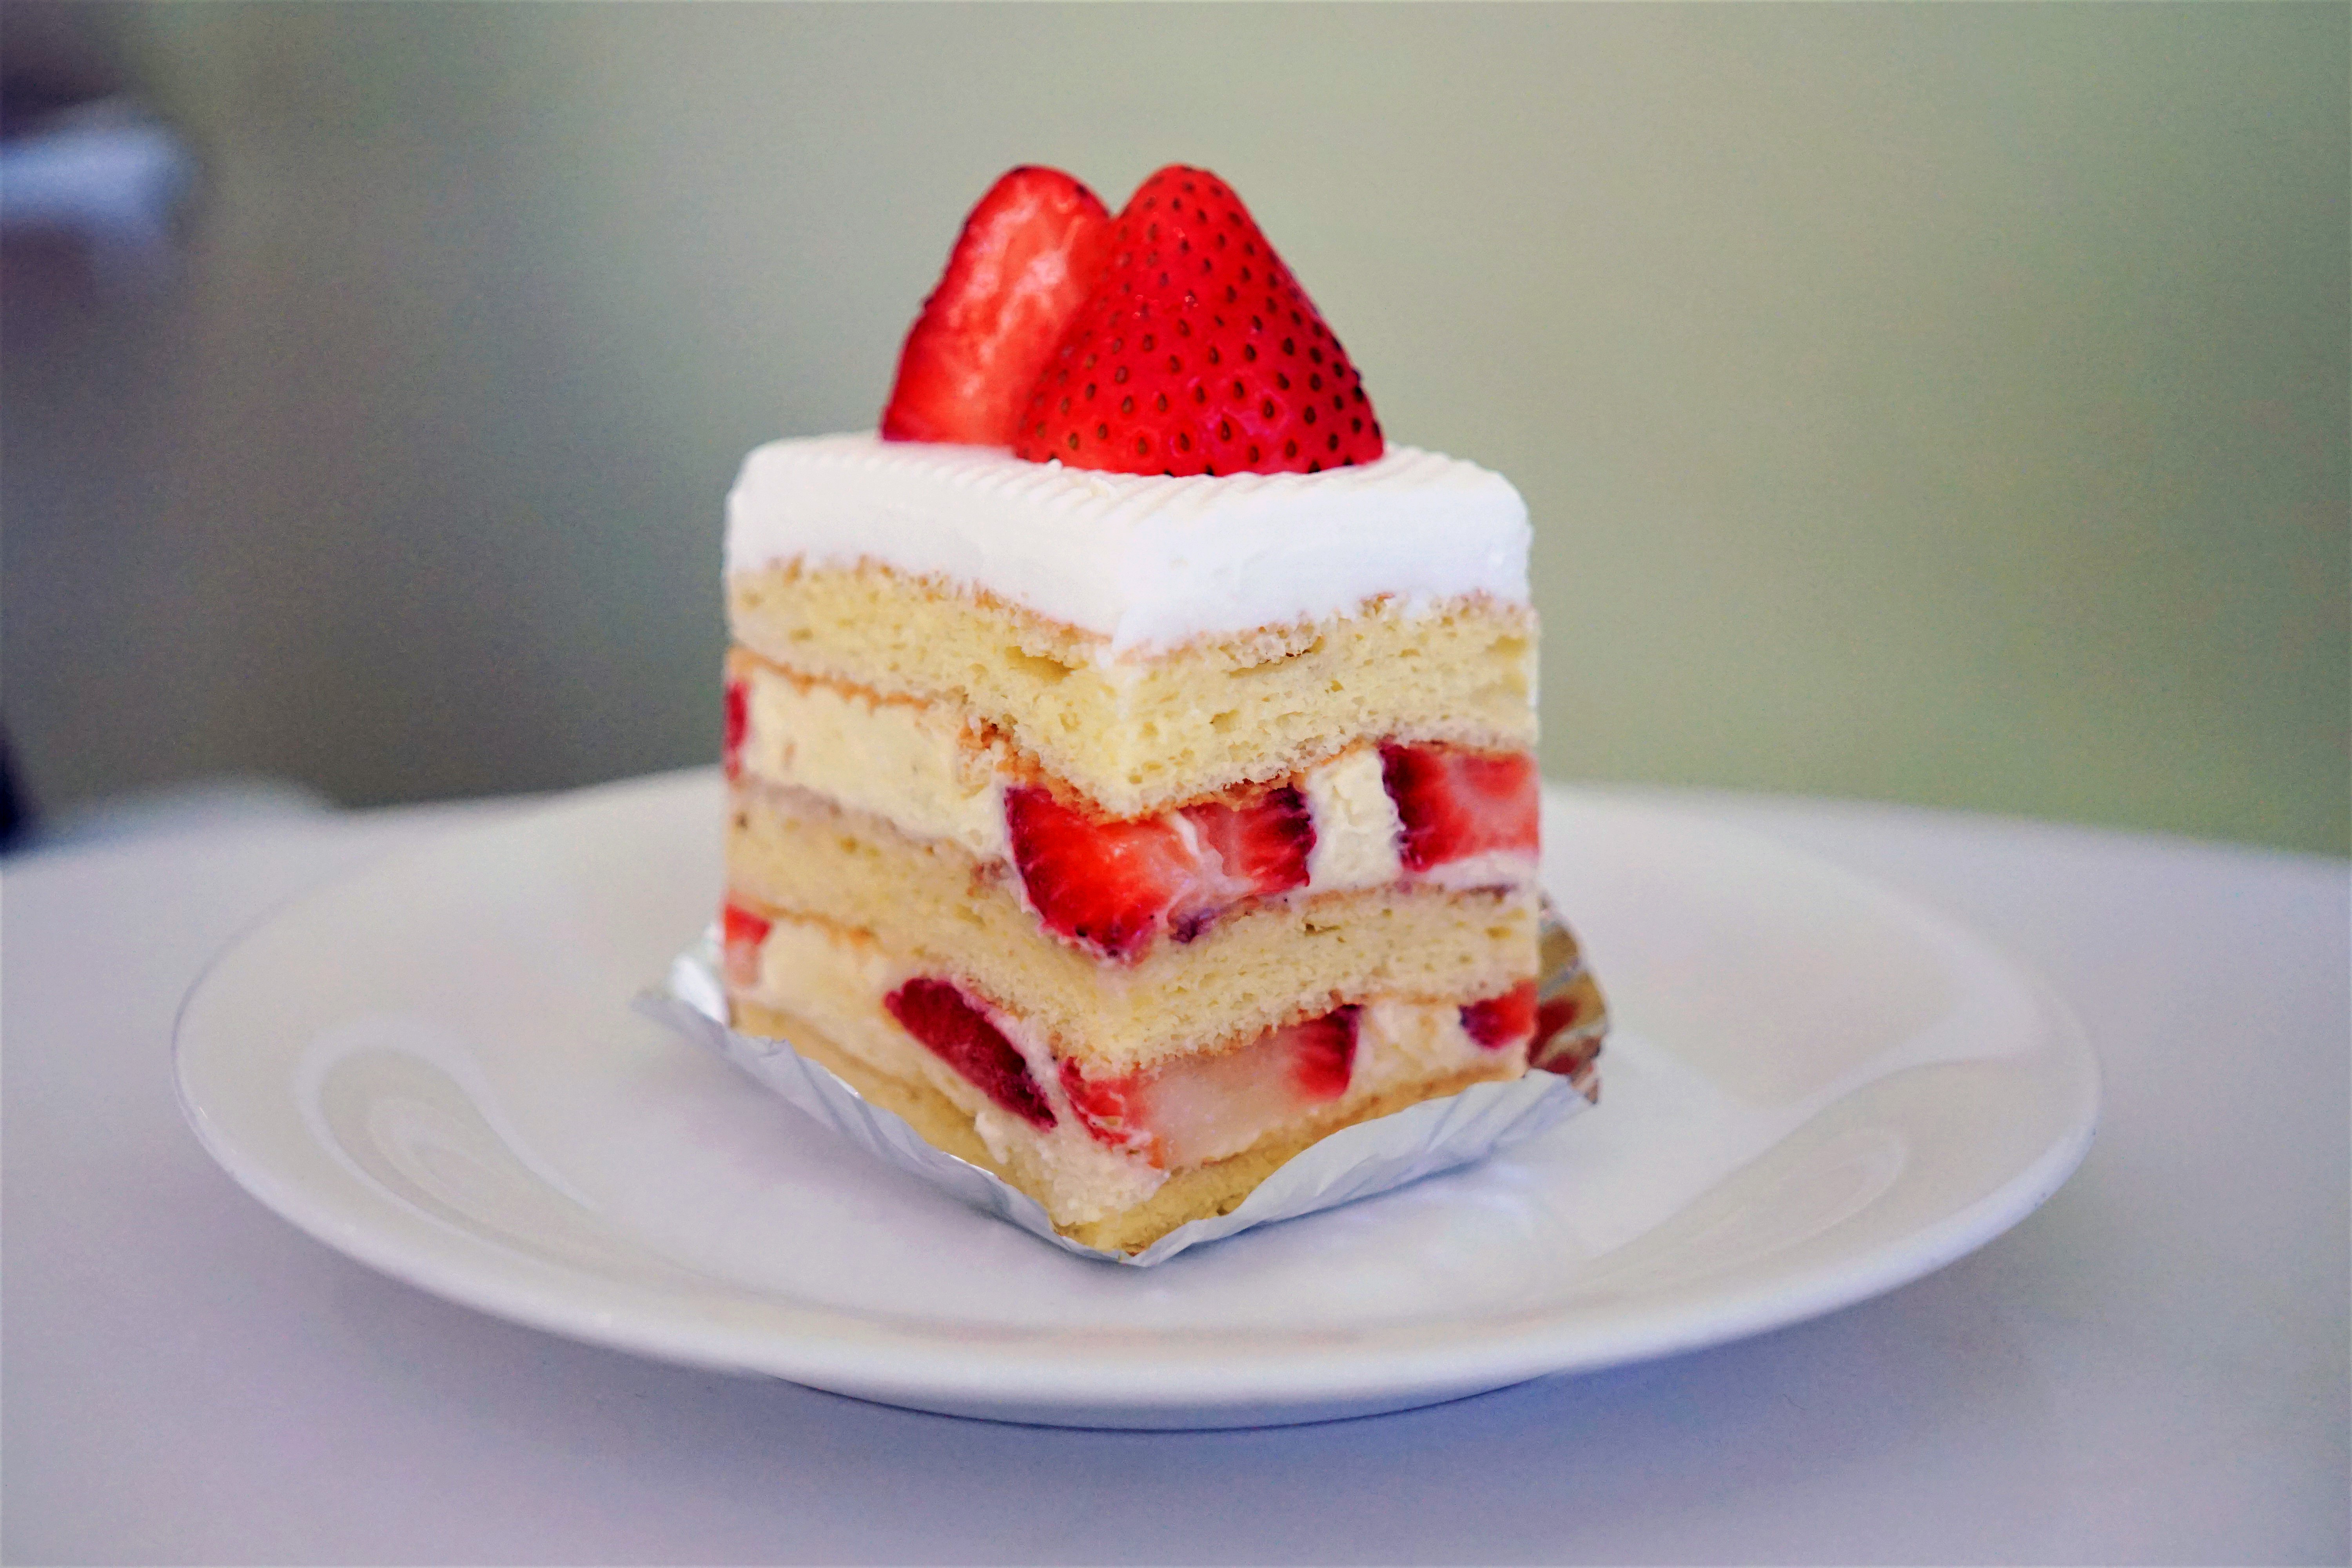 A slice of cake with layers of strawberries and cream and a strawberry on top.